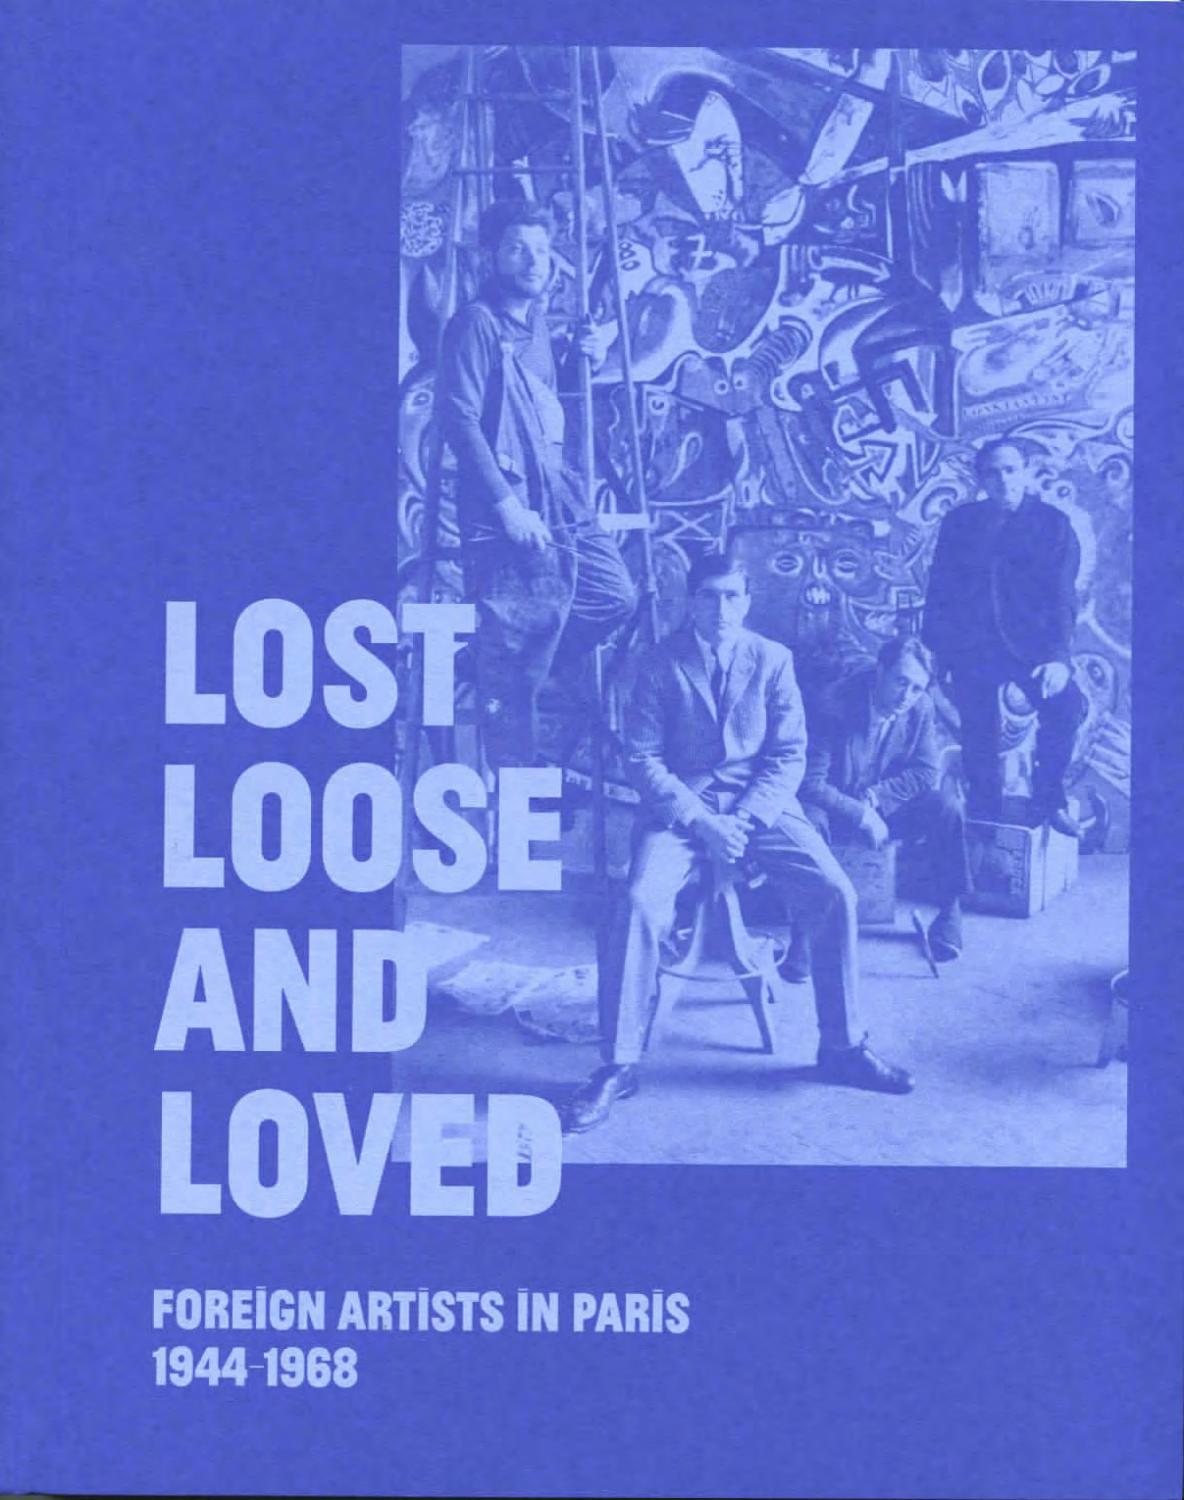 Lost Loose And Loved Foreign Artists In Paris 1944 1968 By